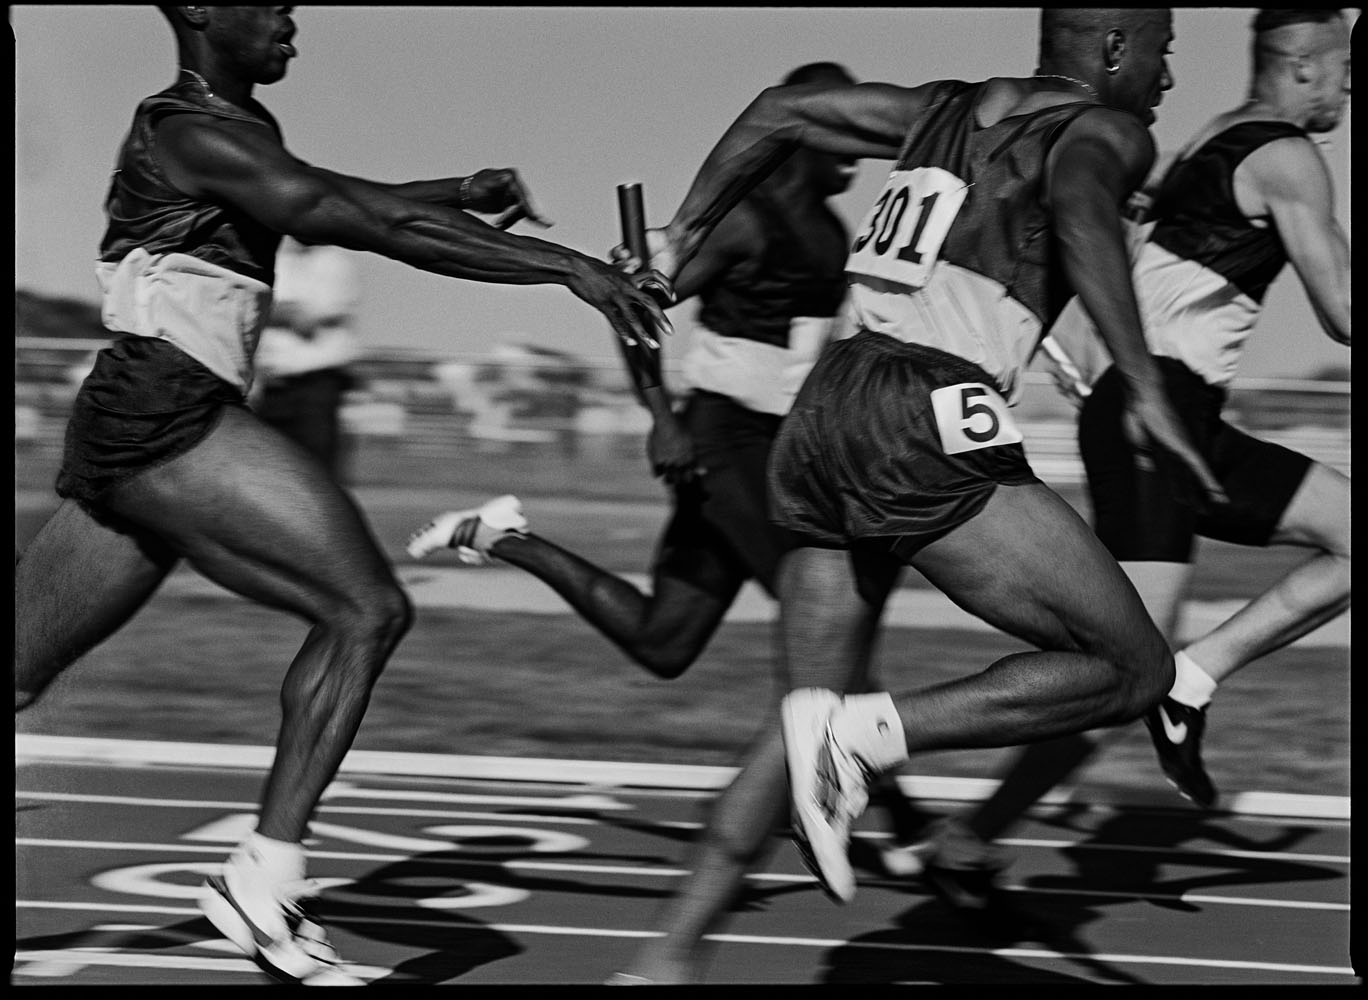 4x100m relay, Trials, Colorado, July 1995